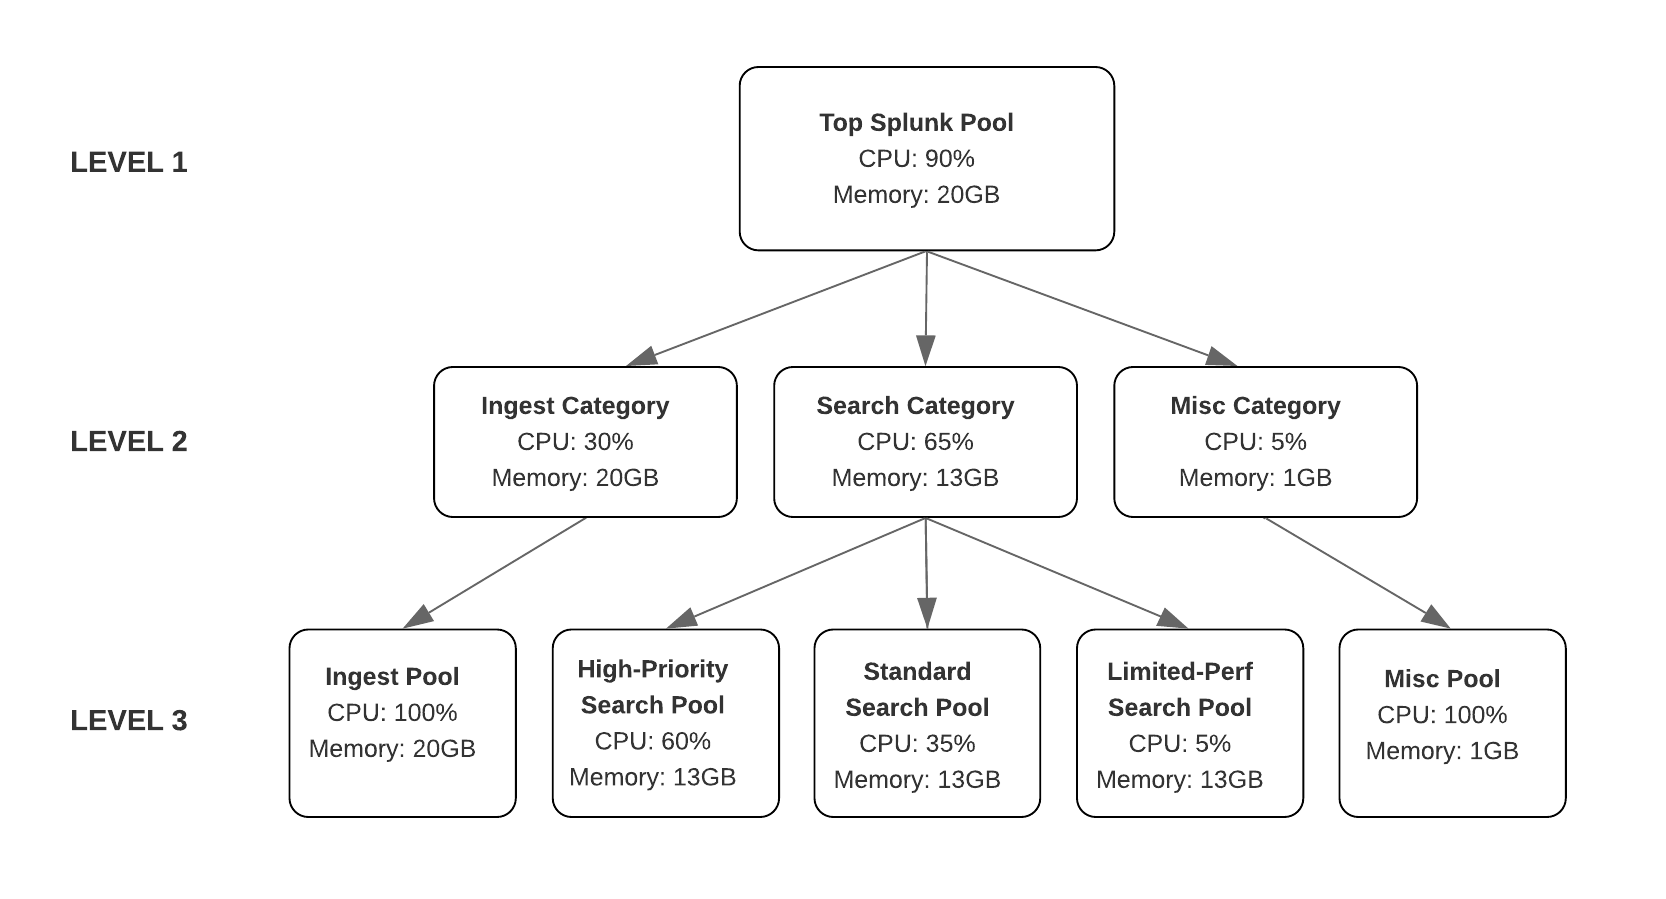 The diagram shows the allocation of CPU and memory resources as a hierarchical tree with three levels. The amount of available CPU and memory is progressively distributed from the Top Splunk Pool to workload categories, and from workload categories to workload pools, from top to bottom.